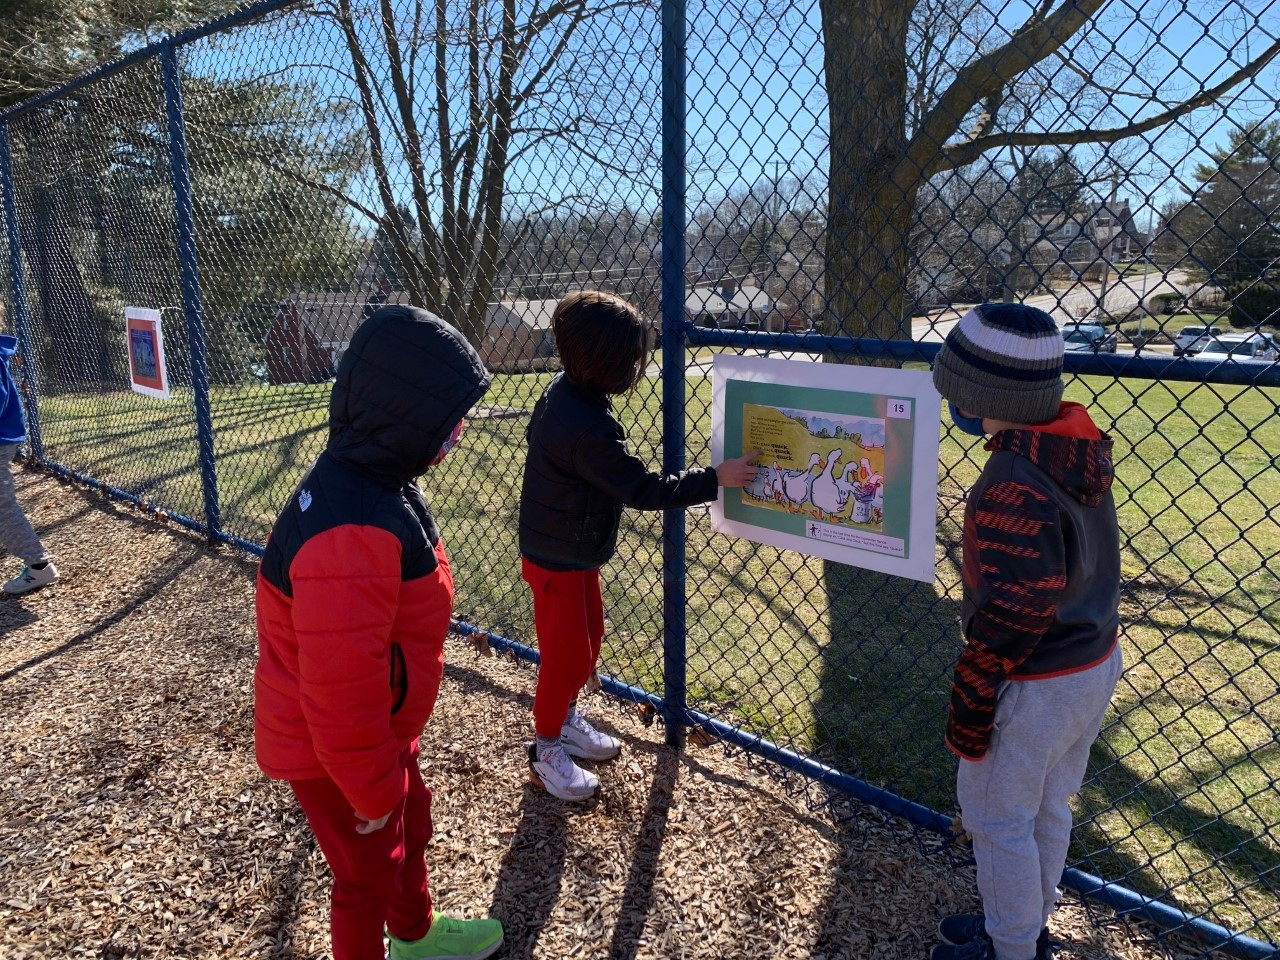 Children view the StoryWalk at Jefferson Elementary